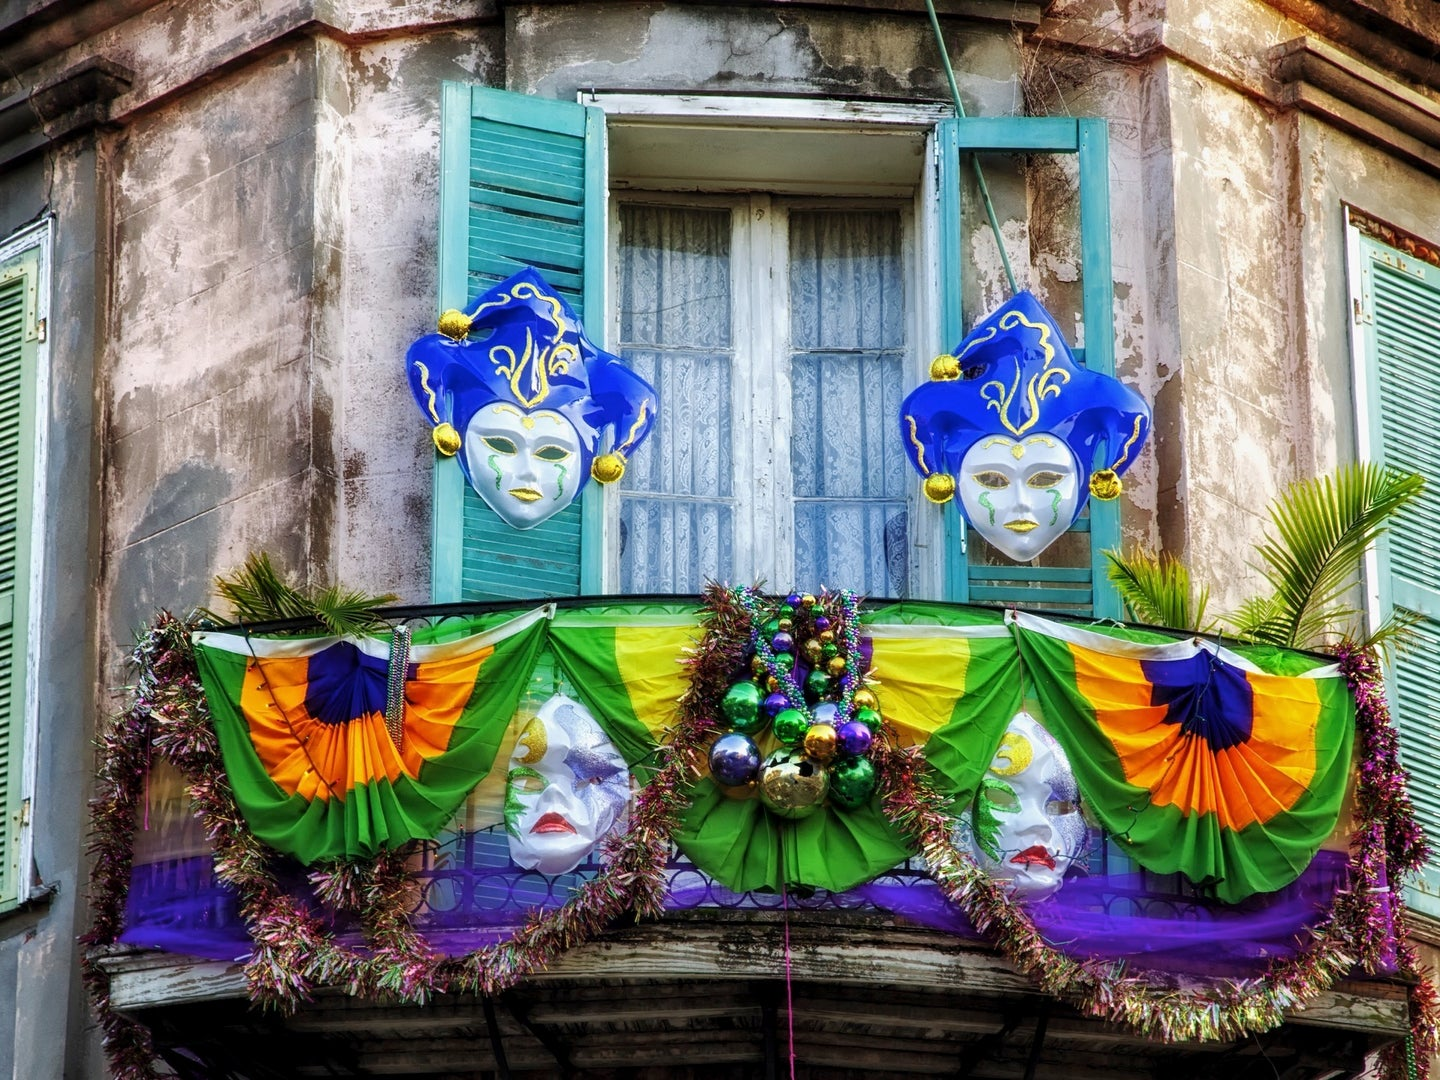 mardi gras decorations in new orleans